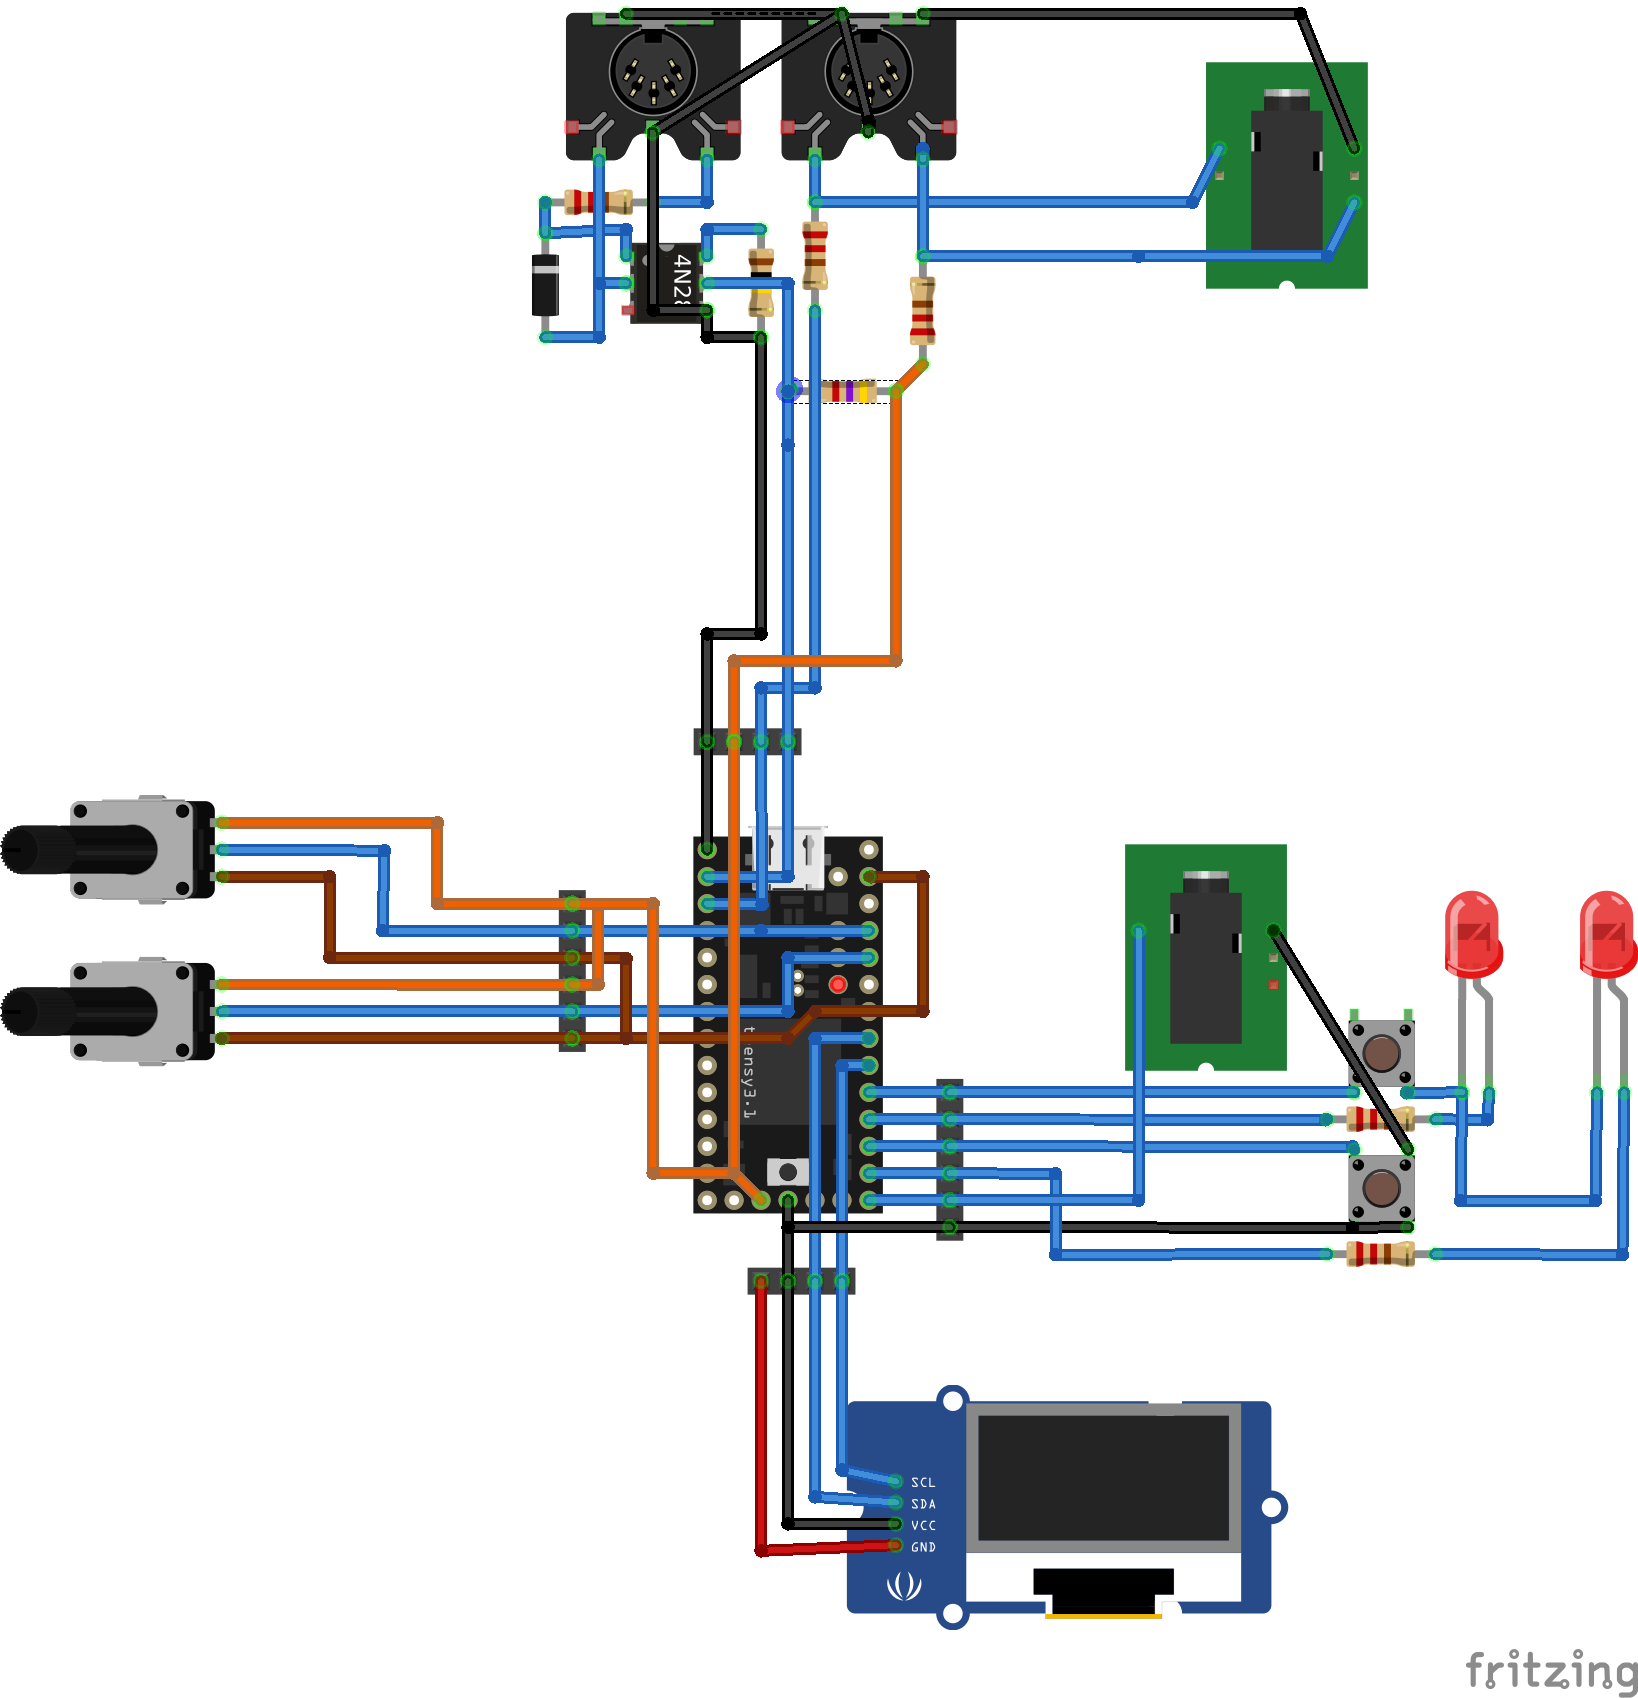 V20 A Teensy Based Midi Controller Untergeekuntergeek Wiring Diagram It To Breadboard With Pinstripe Connectors Quite Simple And Much Less As Would Seem From The Schematic Above